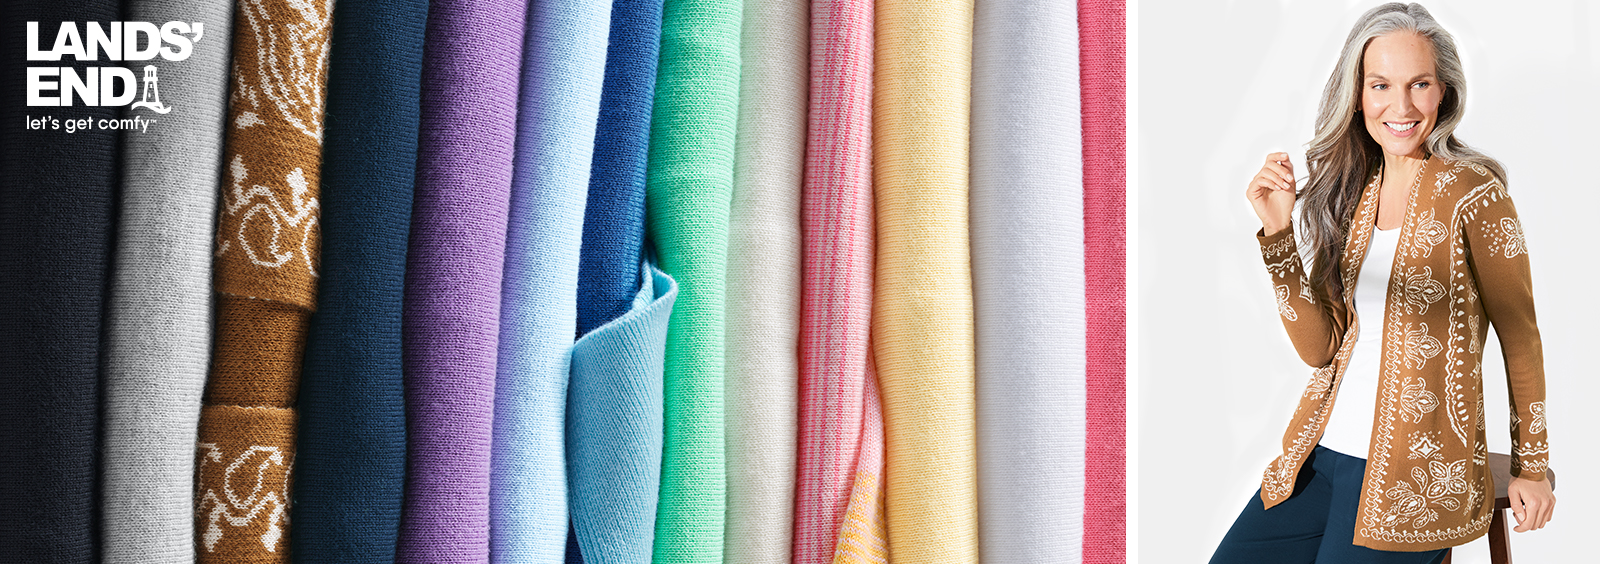 Tips for Layering Shirts Under Cardigans